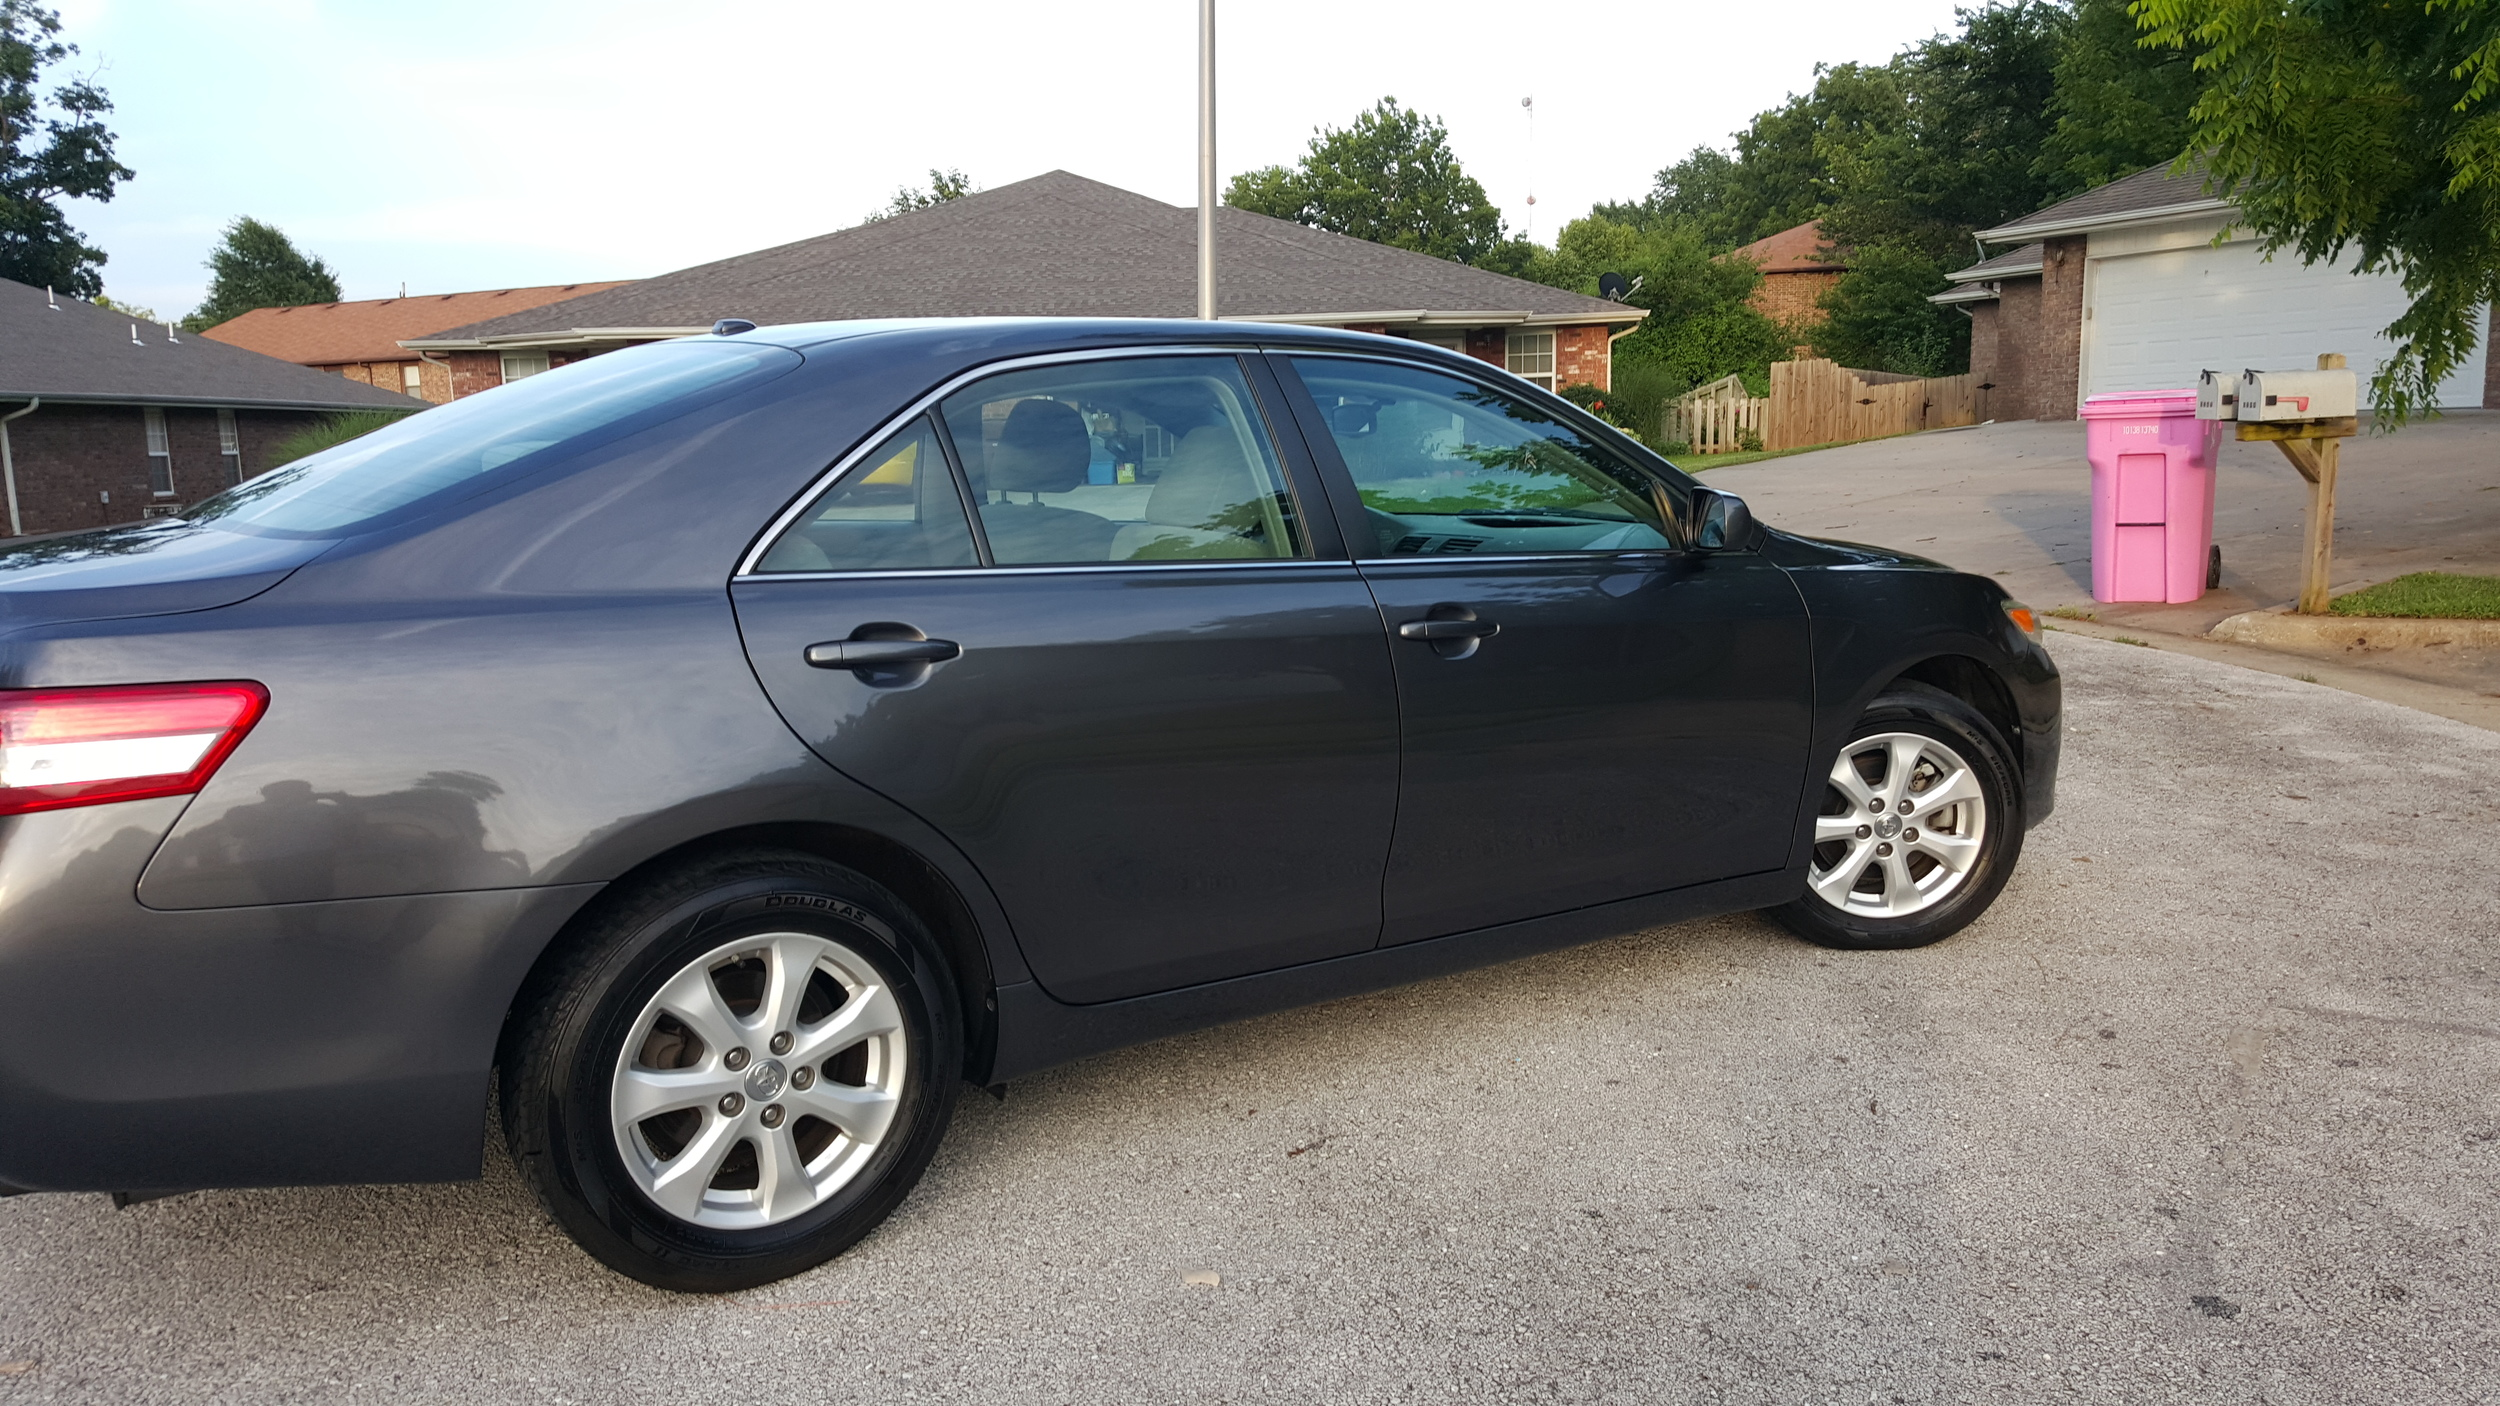 Camry looking gorgeous in this finished picture.